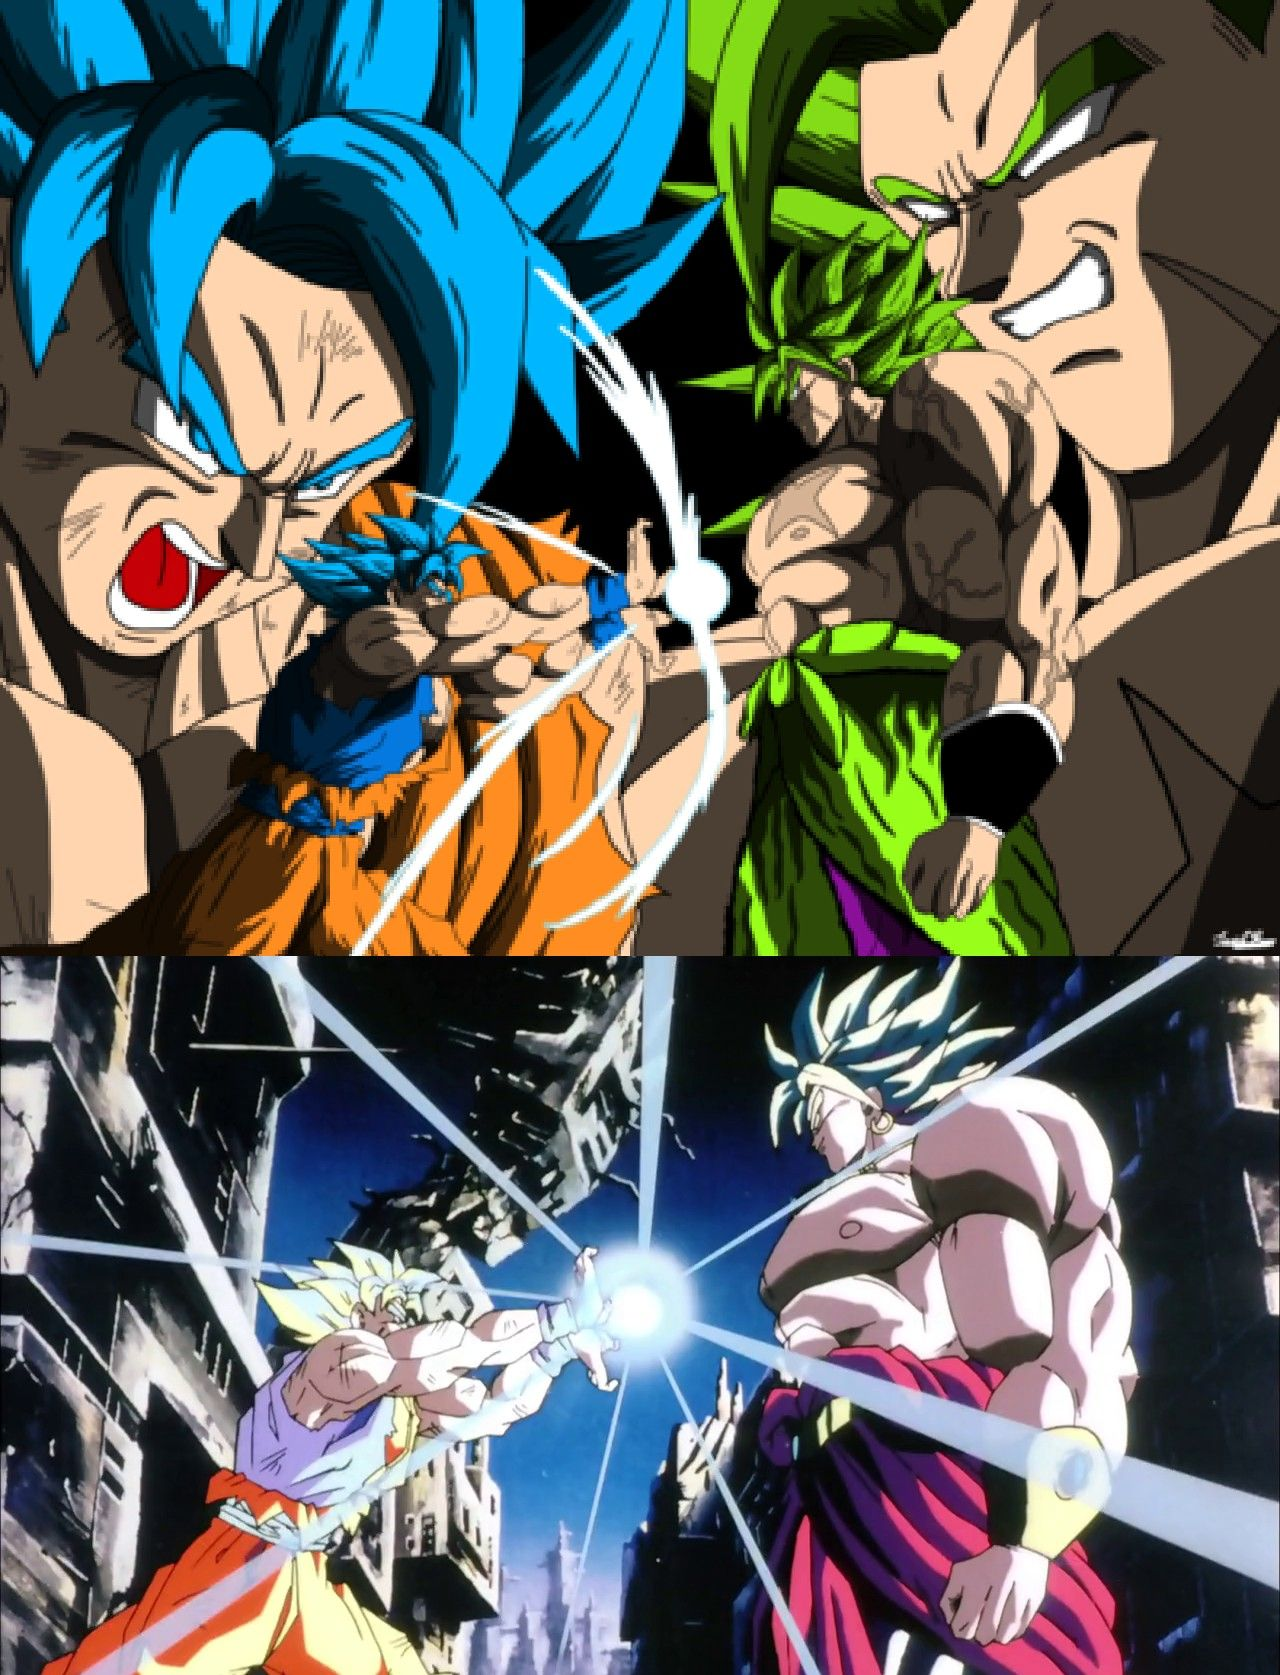 Goku Vs Broly 1993 2018 Fanart Dragon Ball Super Wallpapers